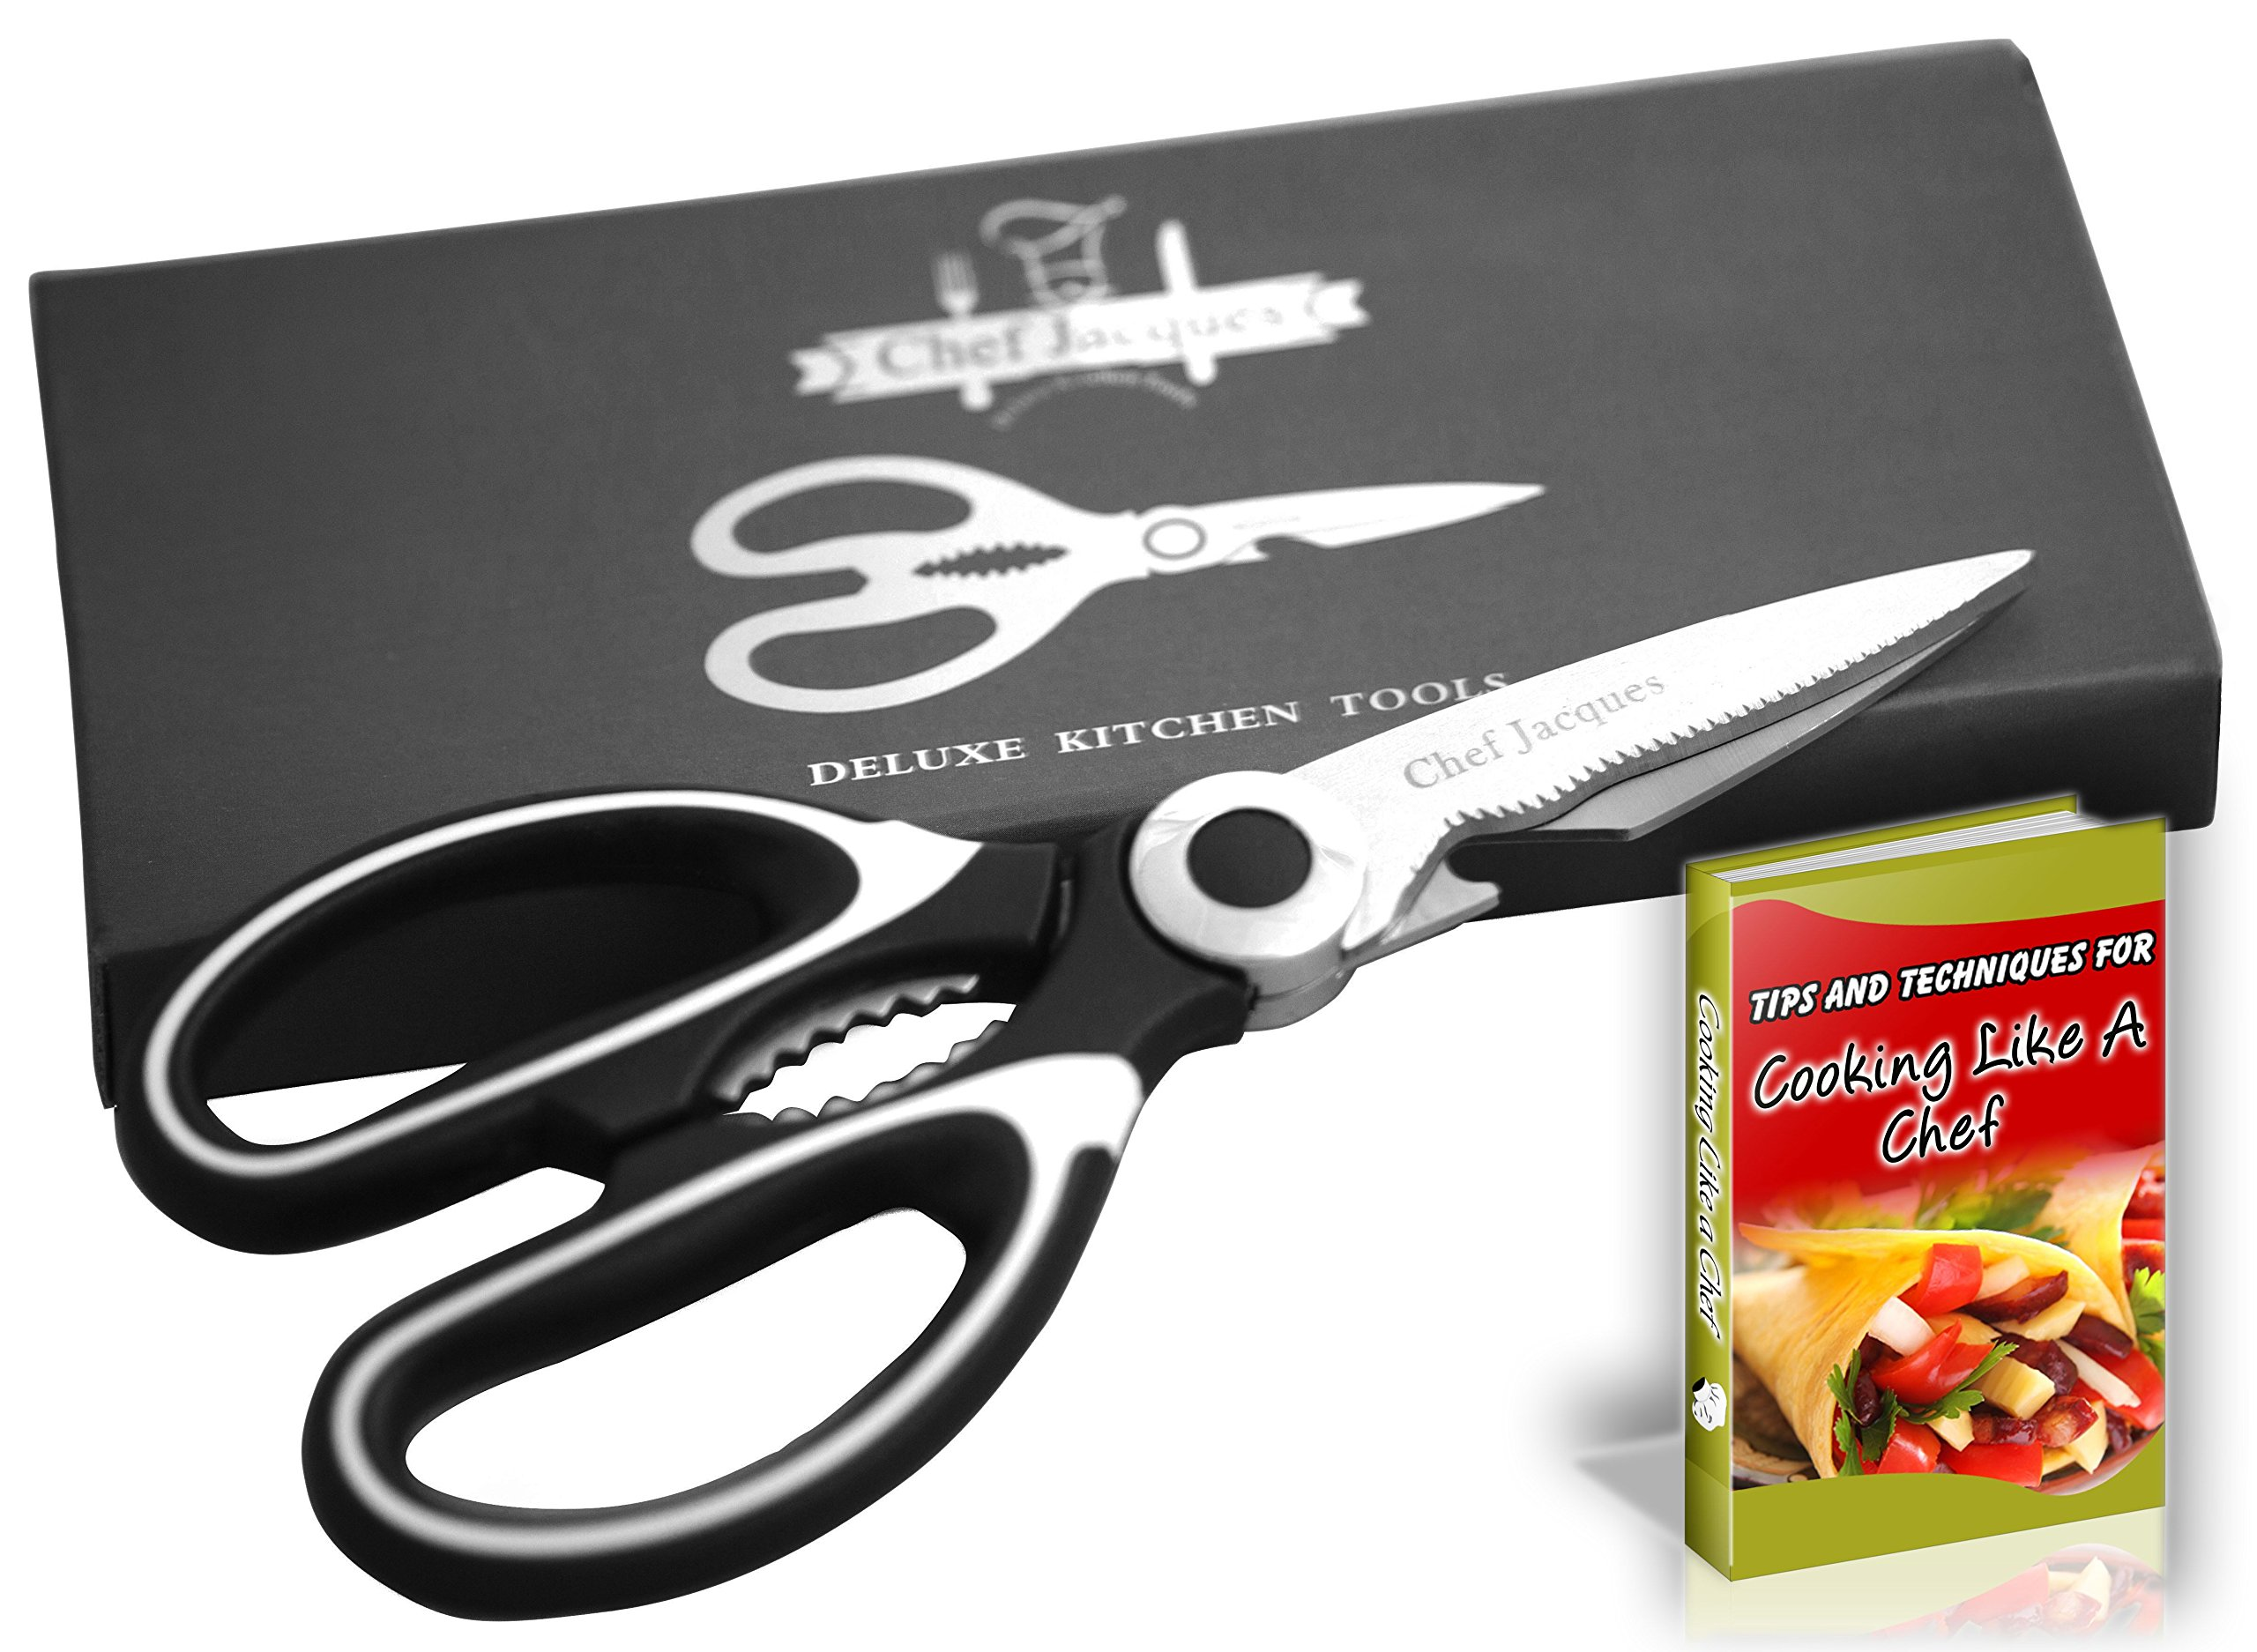 Chef Jacques Ultra Sharp Premium Heavy Duty Kitchen Shears, Stainless Steel Multi-Function Kitchen Scissors for Meat, Chicken, Poultry, Vegetables, Herbs, Bottle Opener, Fish Scale Scraper